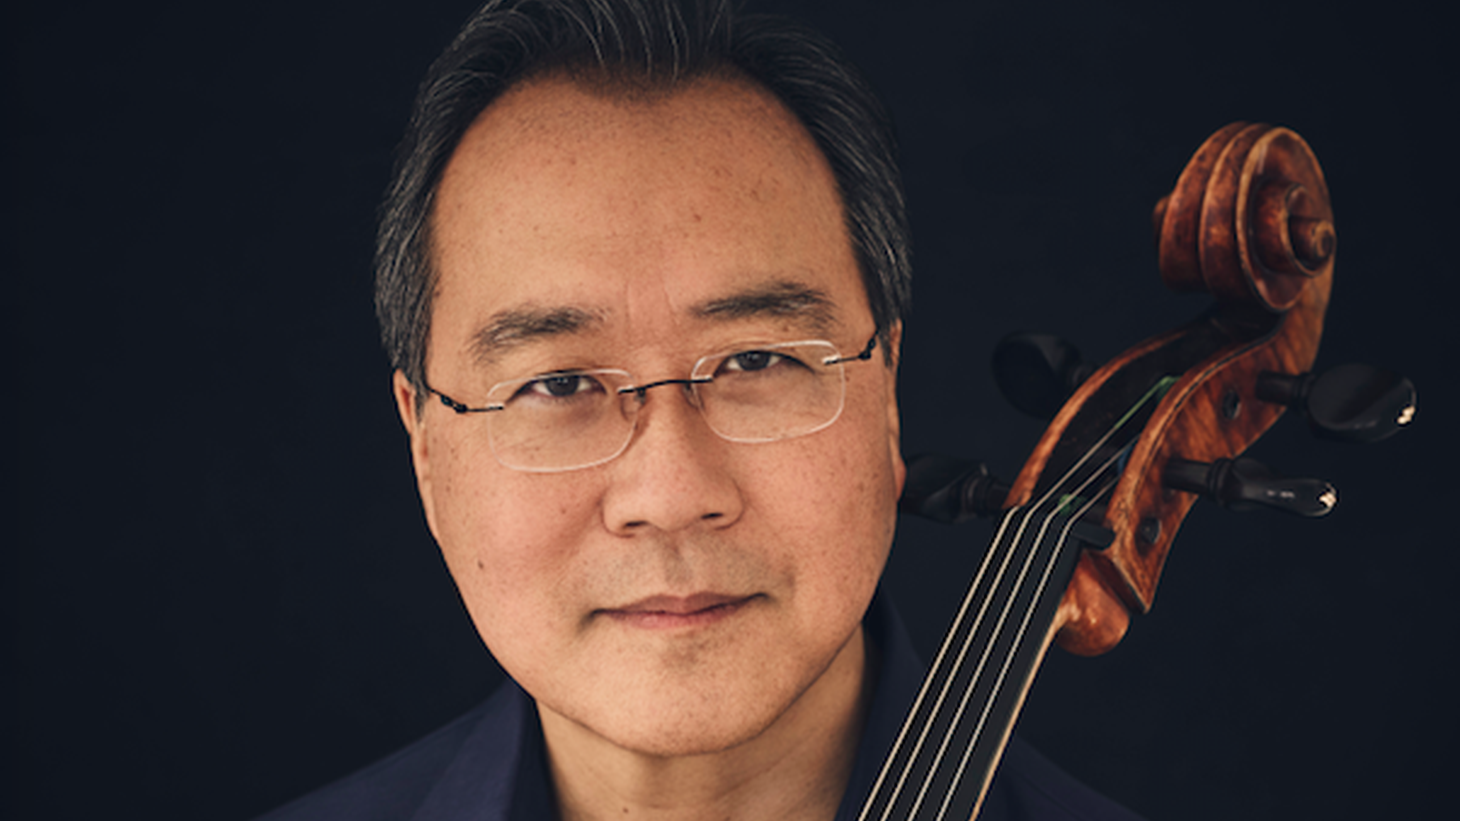 Yo-Yo Ma is widely regarded as one of the greatest cellists of all time and joins us for a solo live performance at 10am to play the music of Bach.